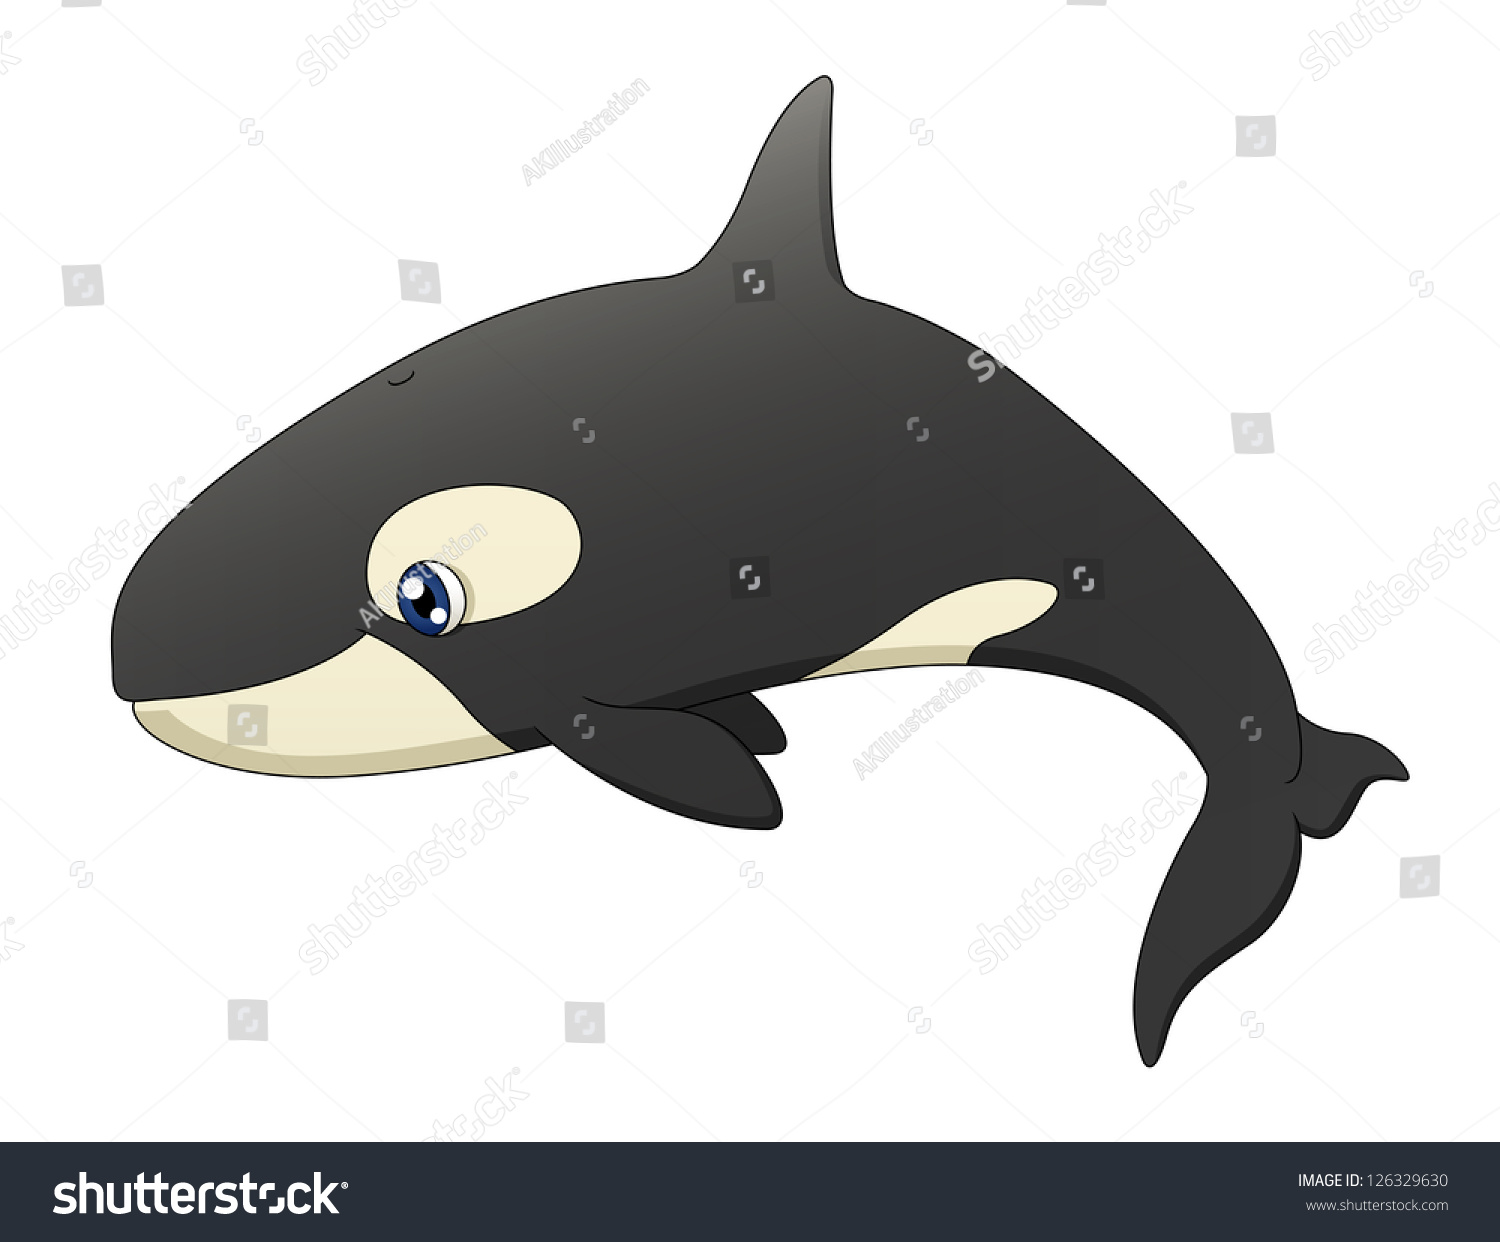 Cute whale in water cartoon isolated illustration stock photography - An Illustration Depicting A Cute Cartoon Killer Whale Swimming Raster